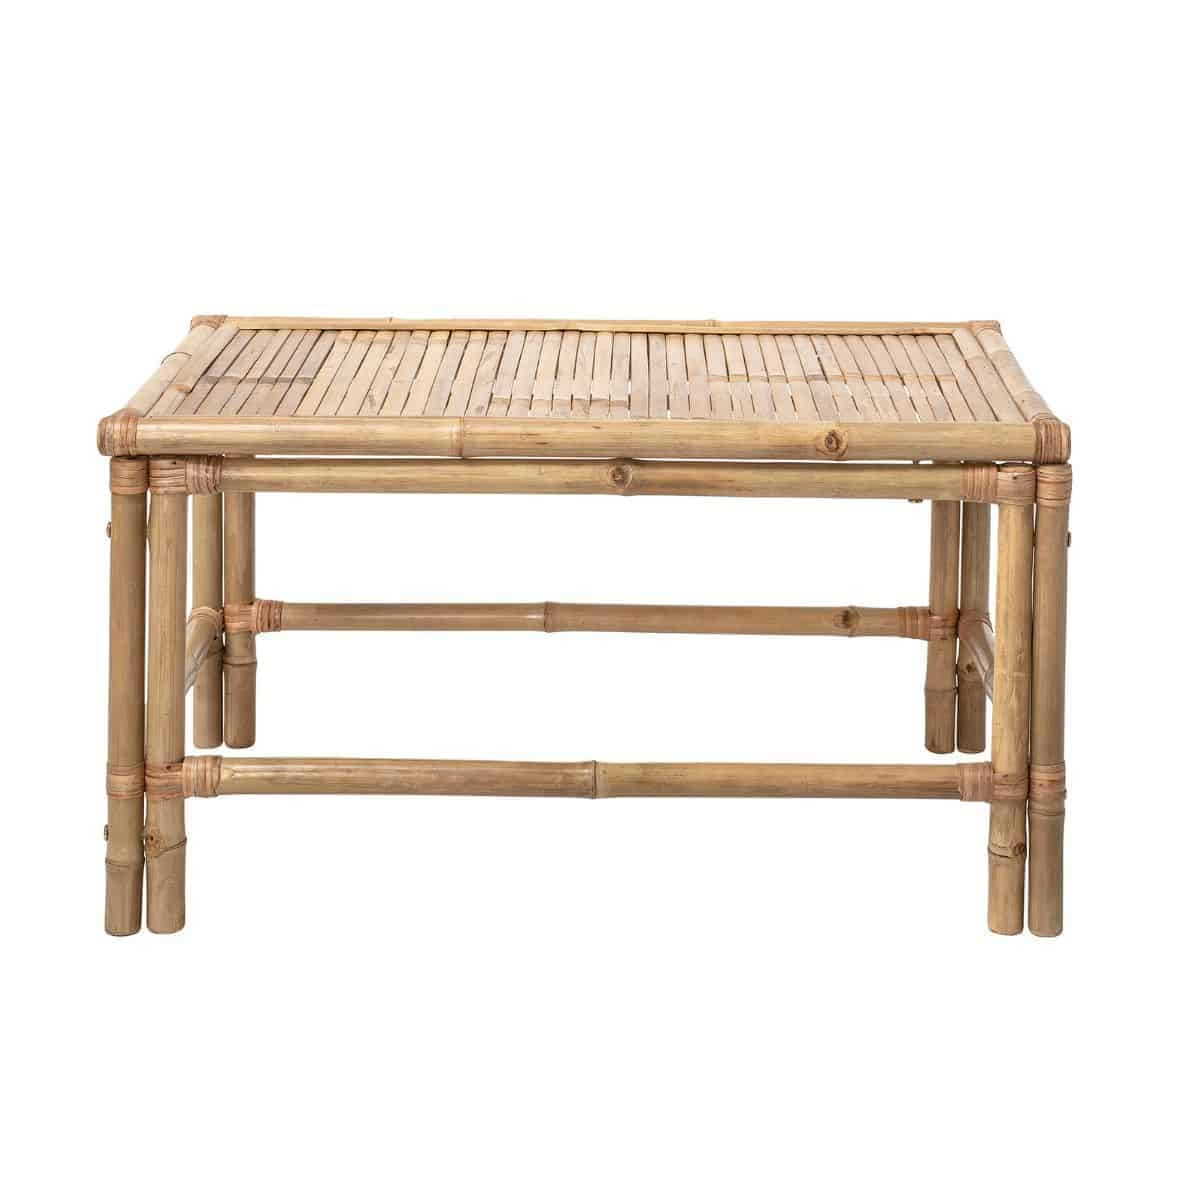 Bamboe Salon Tafel.Bloomingville Sole Salontafel Buiten Naturel Bamboe